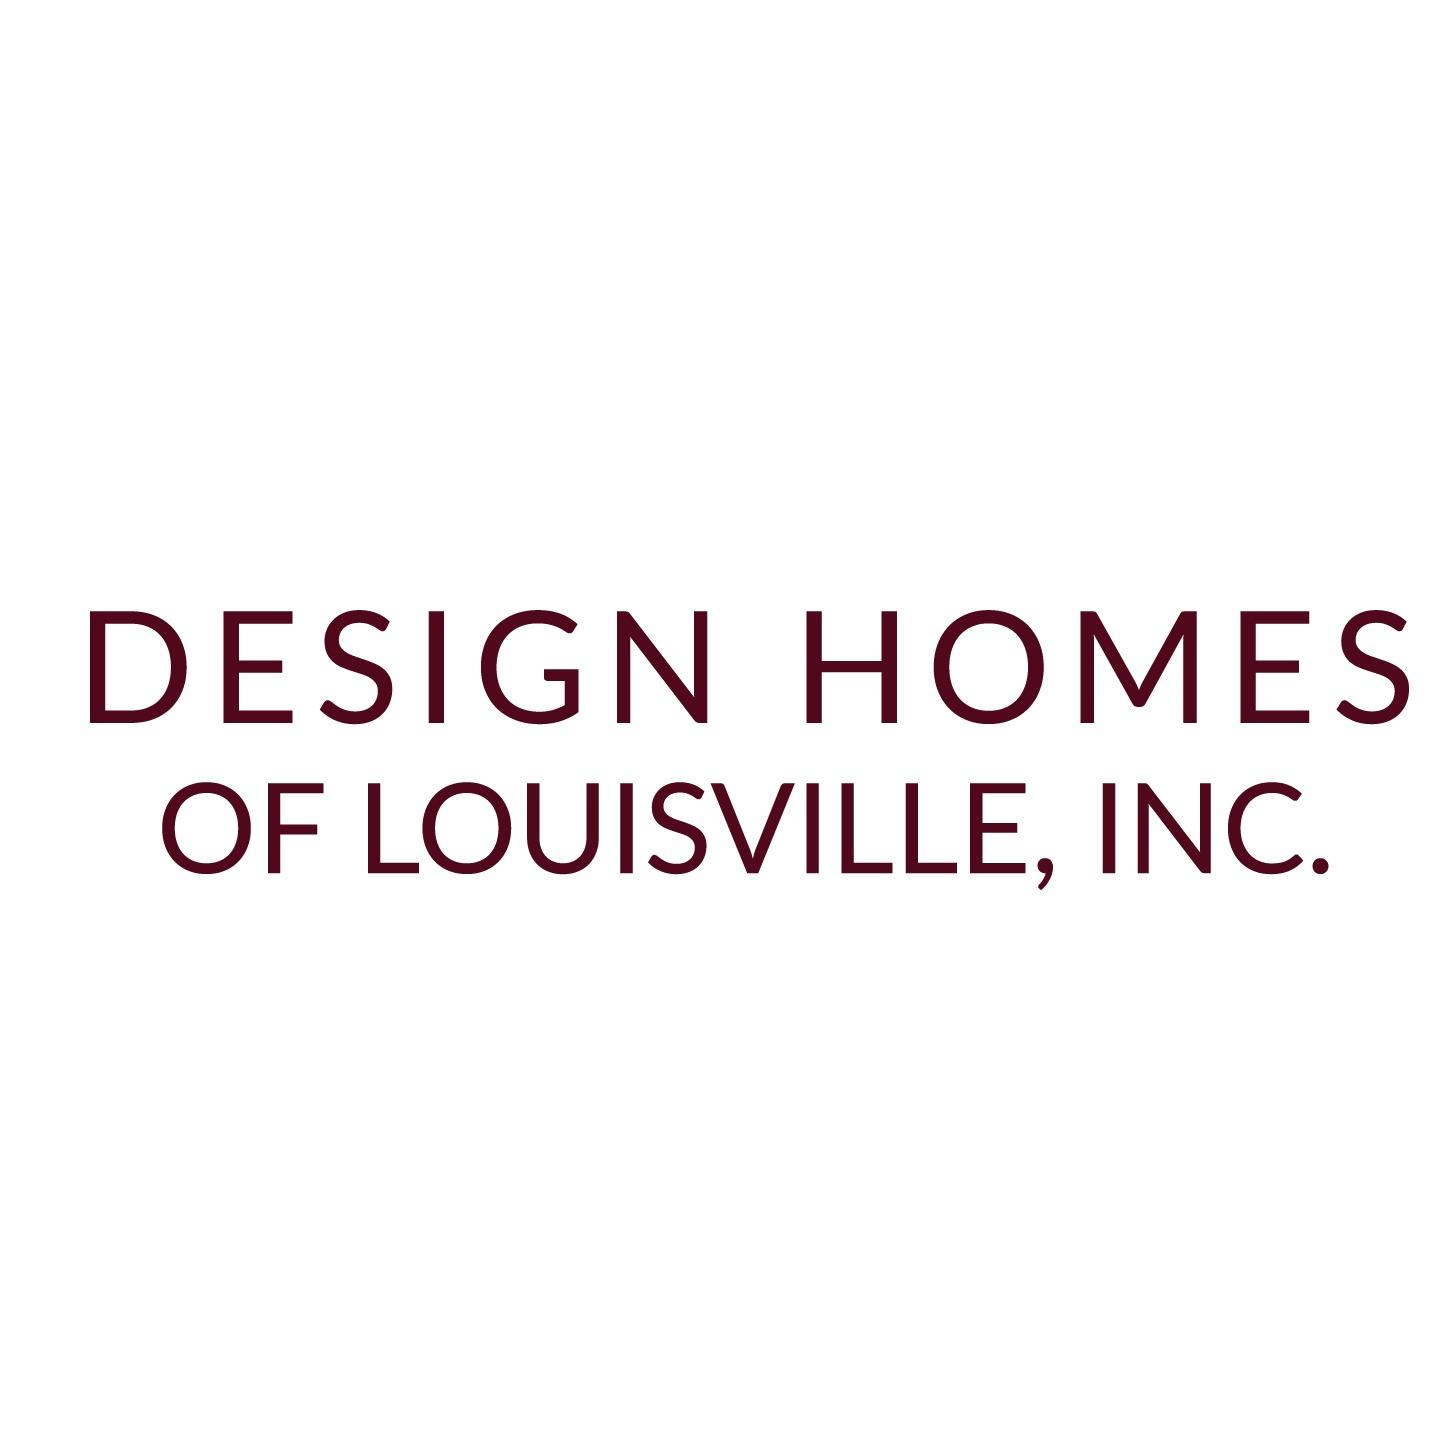 Design Homes Of Louisville, Inc.